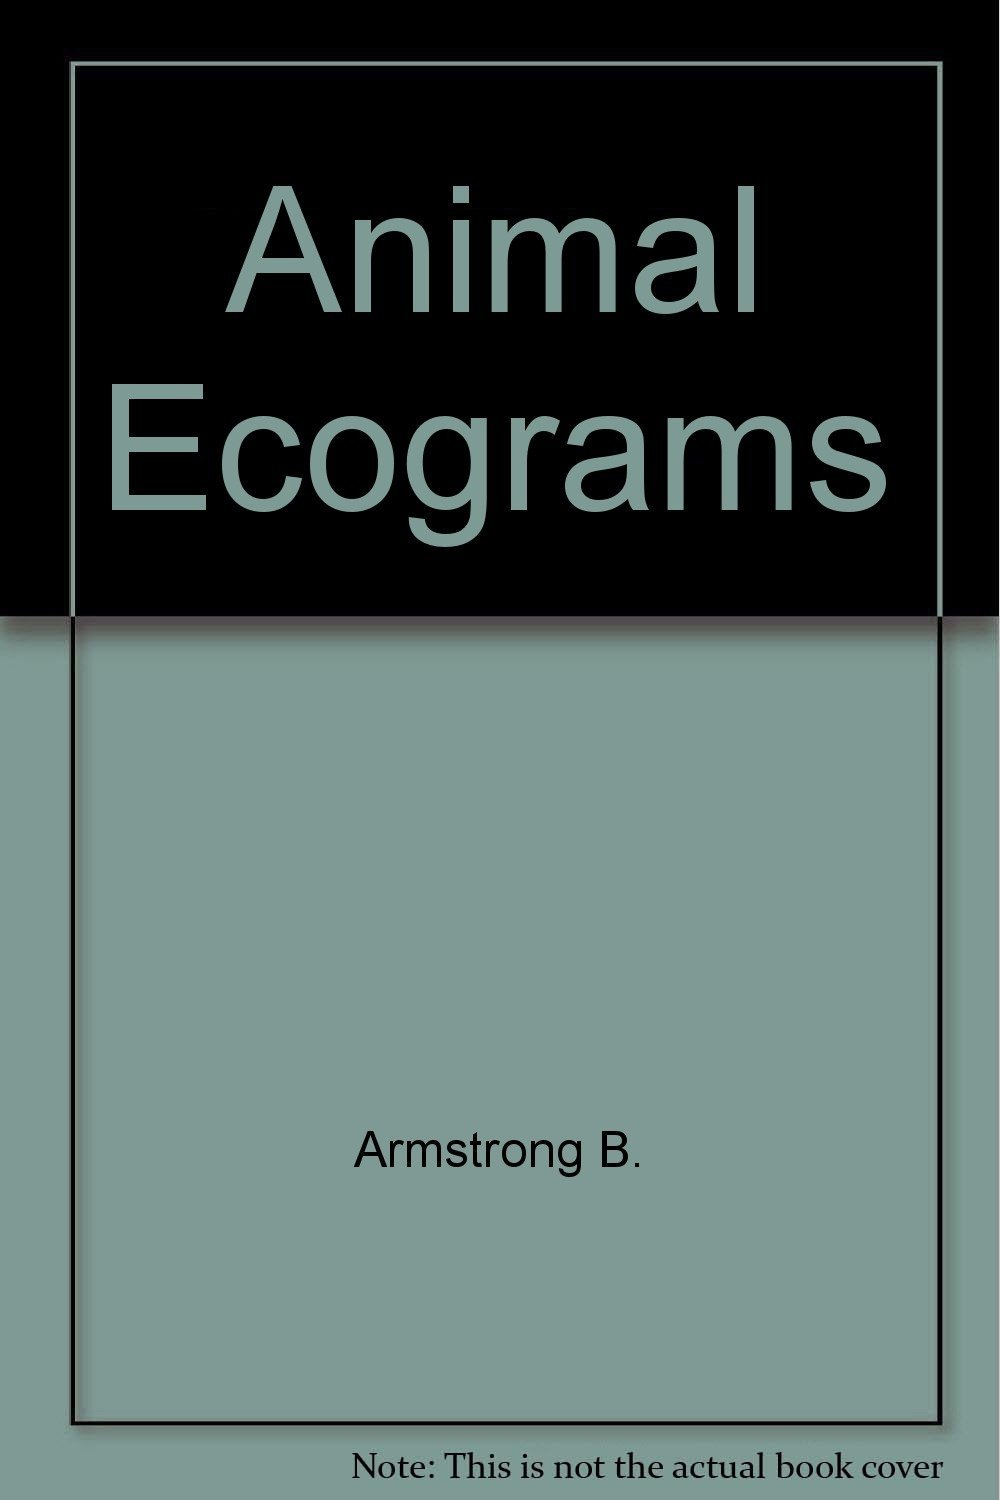 Animal Ecograms [Nov 01, 1992] Armstrong, Beverly and Armstrong, B.